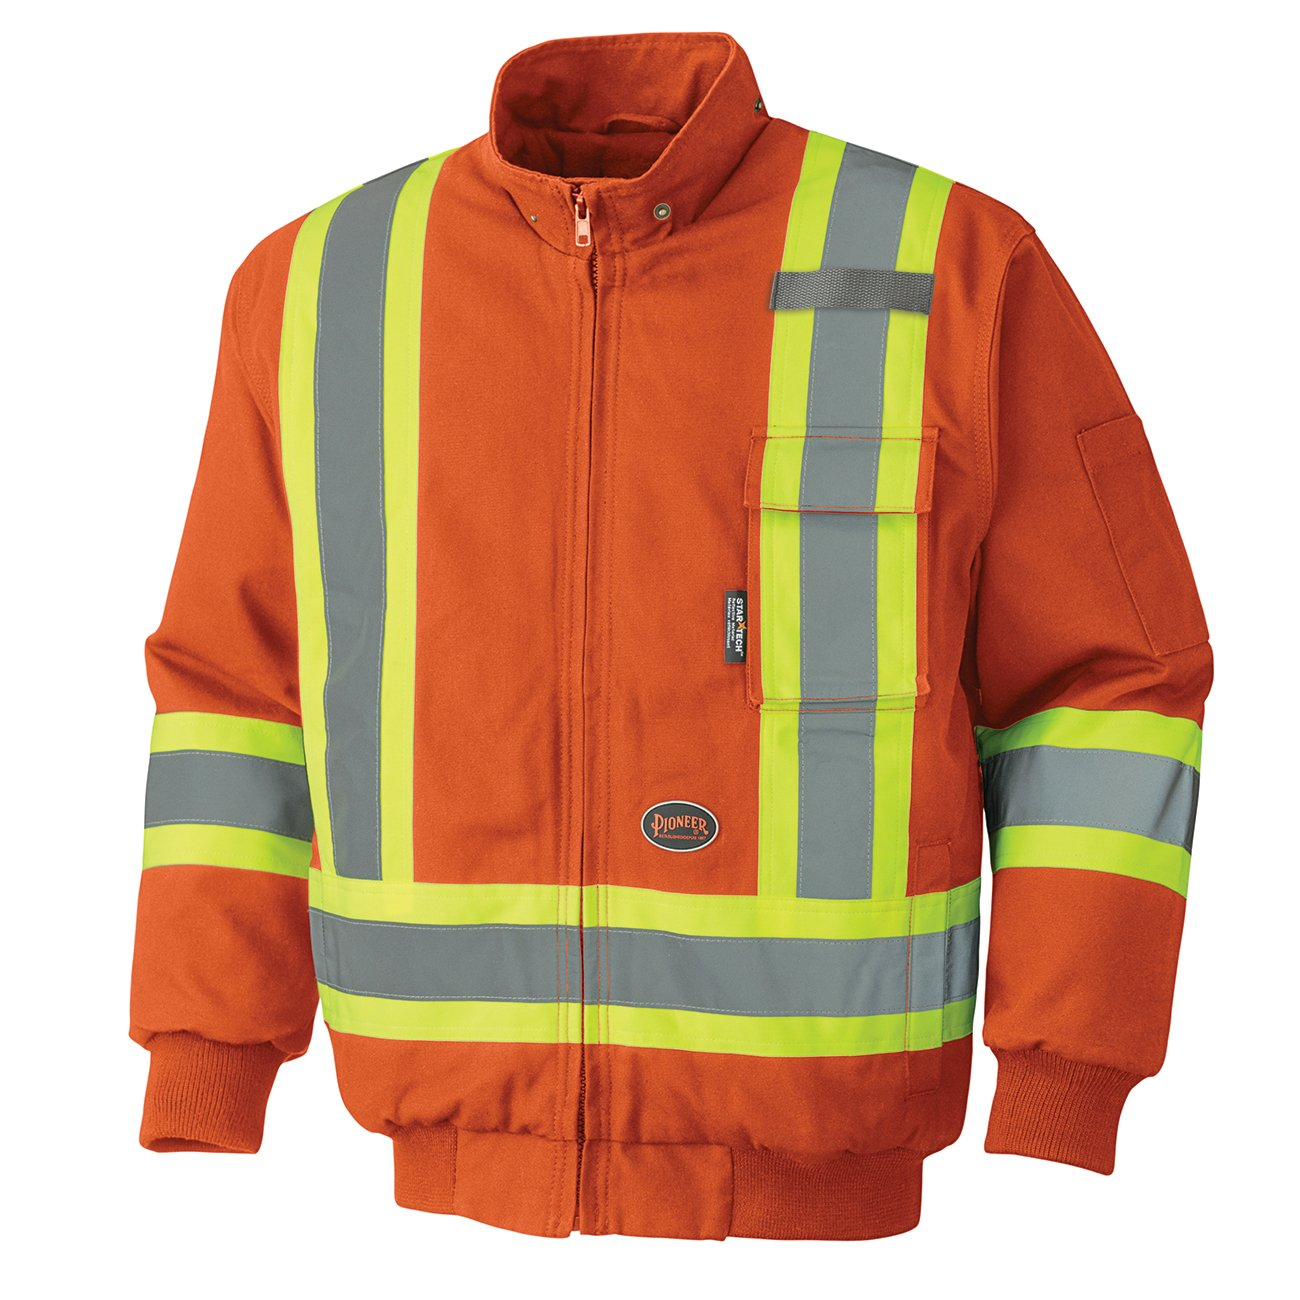 Pioneer V2060450-4XL Heavy-Duty Reflective Winter Safety Bomber Jacket, Orange, 4XL